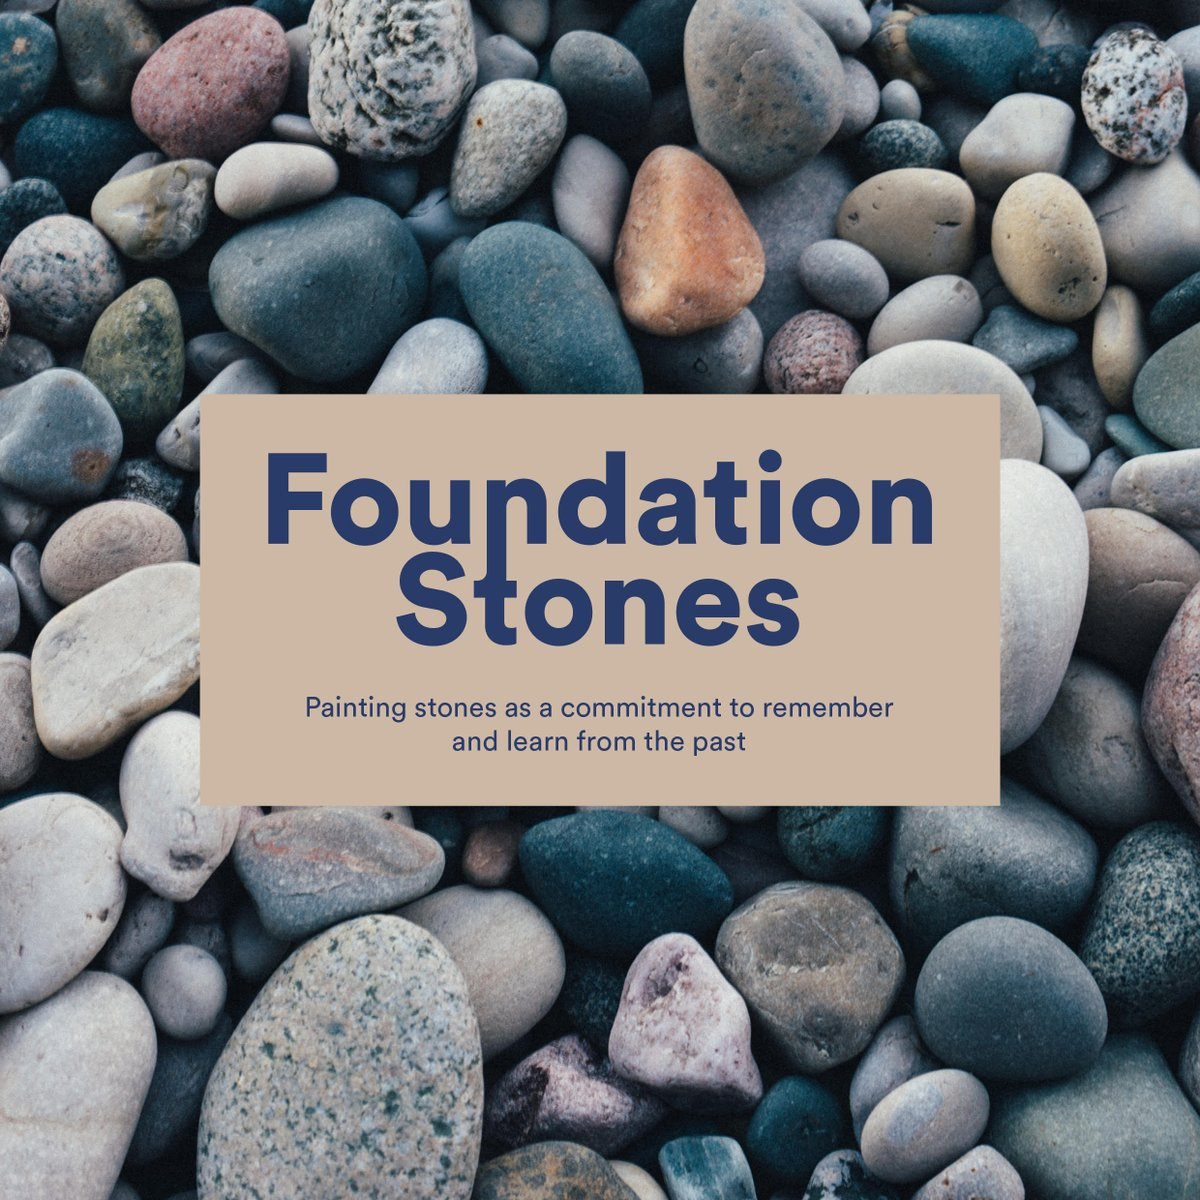 Big Ideas On Twitter Your Painted Stone Will Be Laid Within The Foundations Of The New Uk Holocaust Memorial And Learning Centre Each Foundation Stone Is A Commitment To Remember And Learn